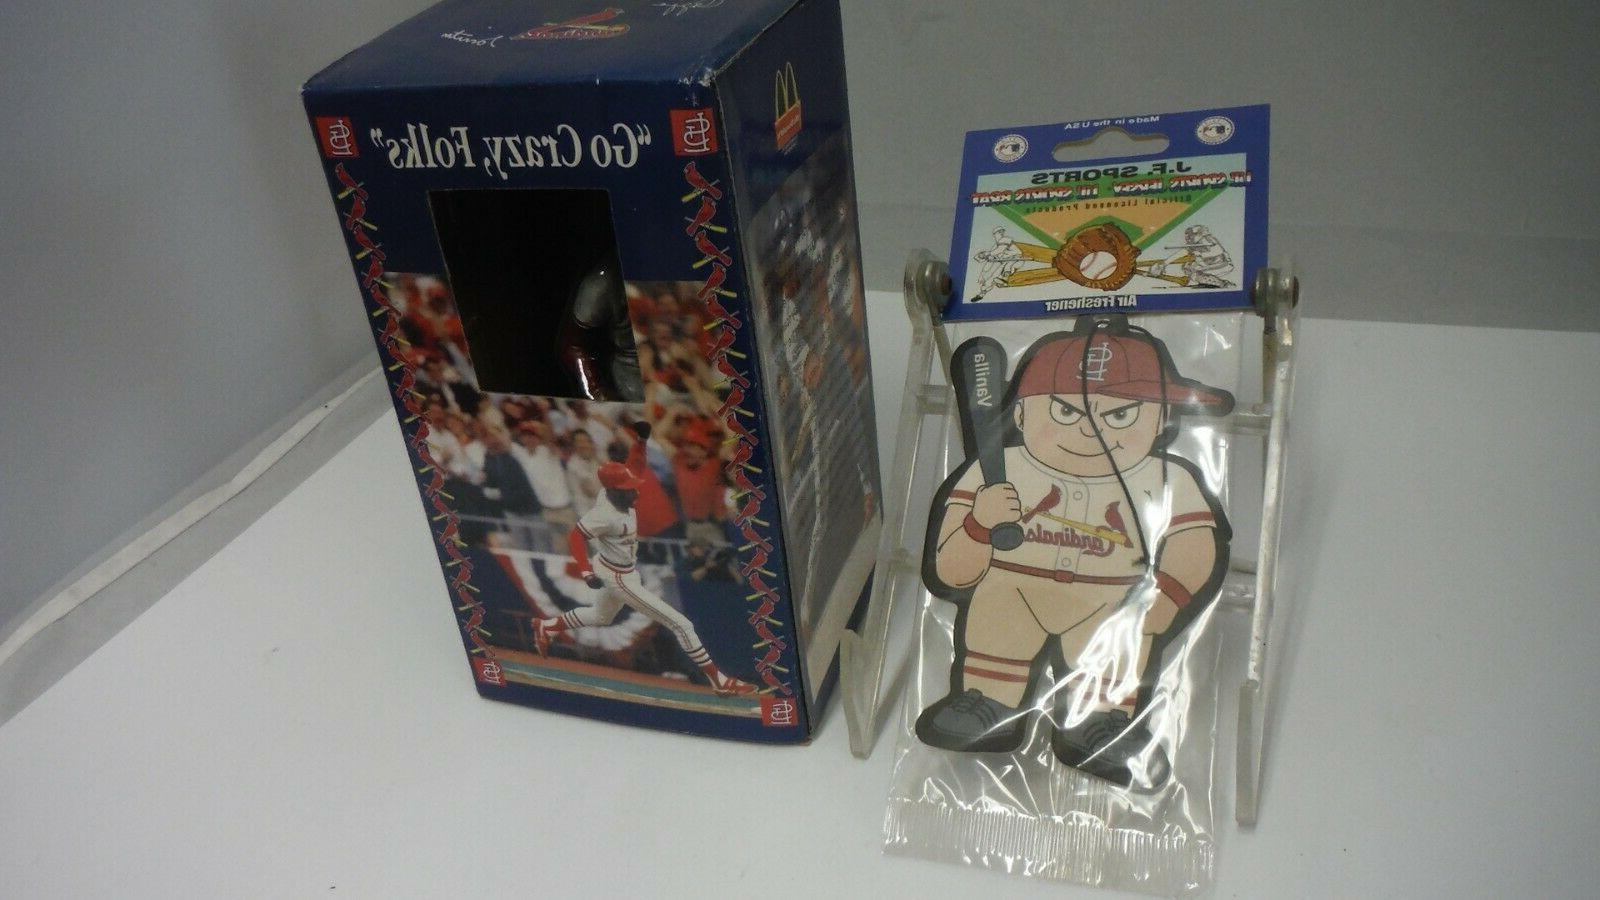 mcdonalds ozzie smith game day give a